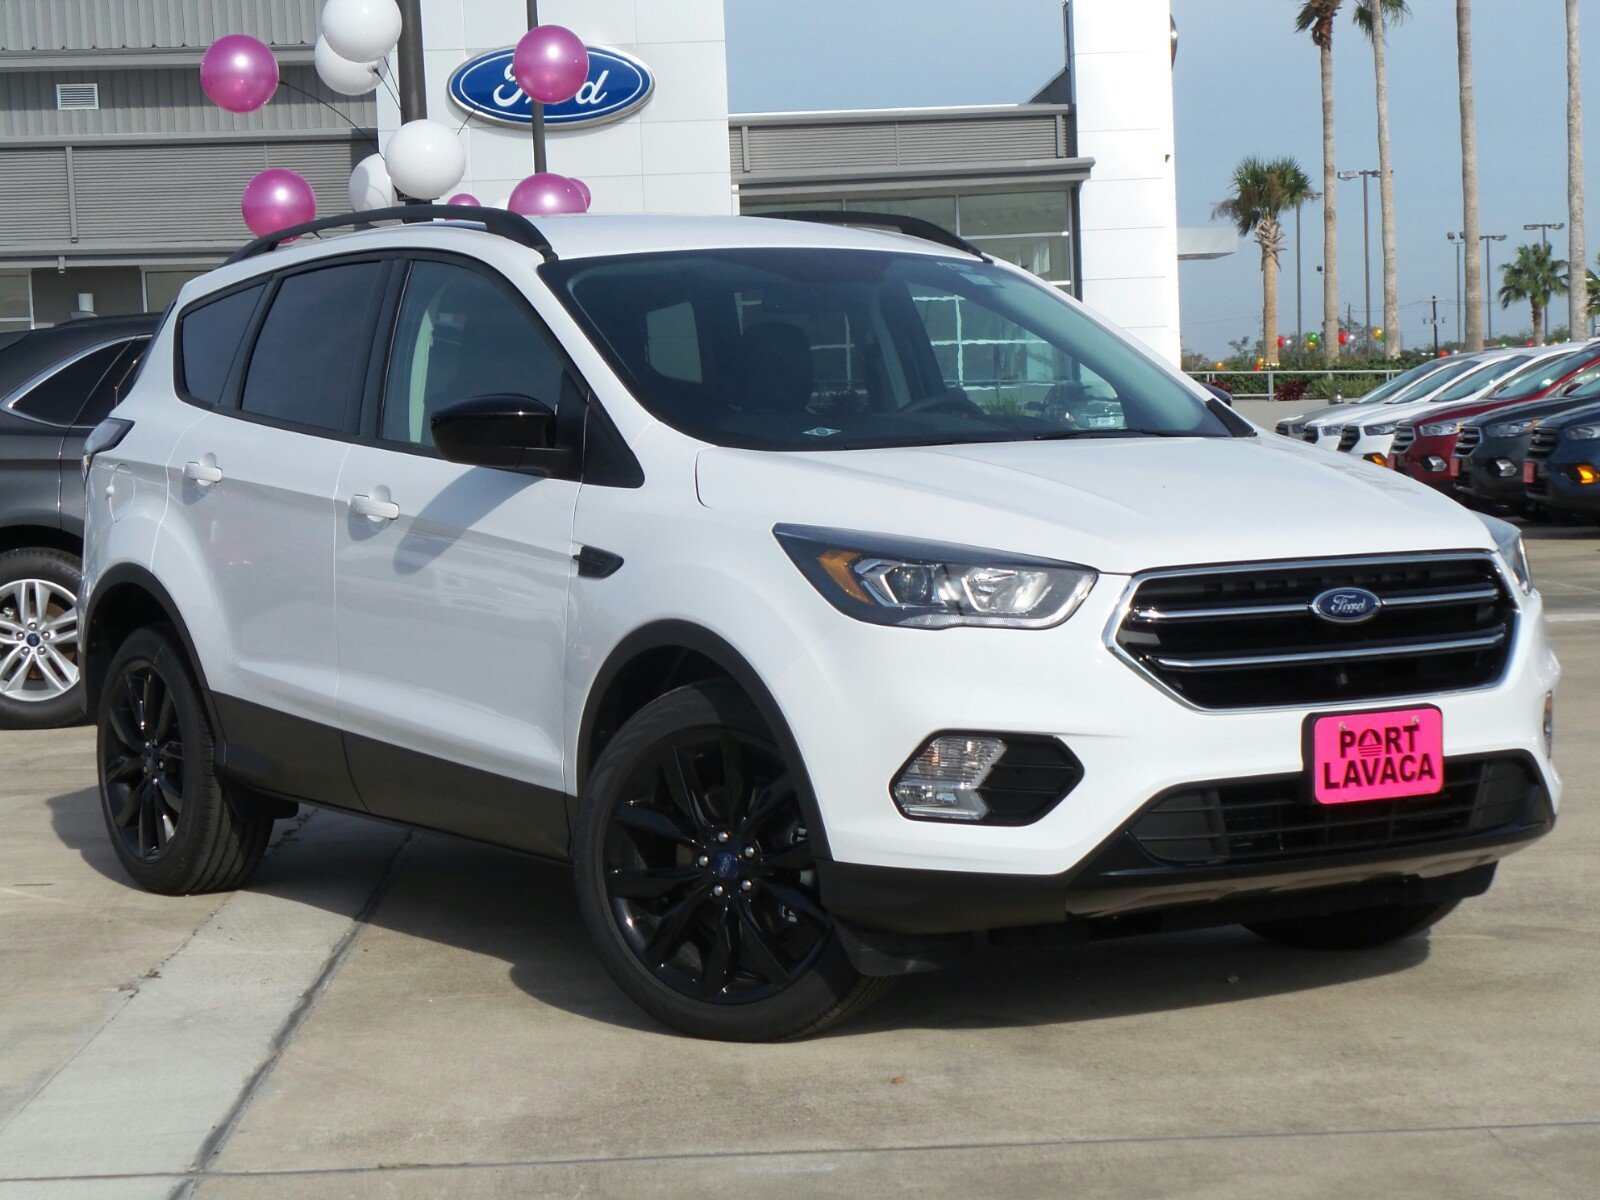 new 2018 ford escape se sport utility in port lavaca ua41817 port lavaca ford. Black Bedroom Furniture Sets. Home Design Ideas